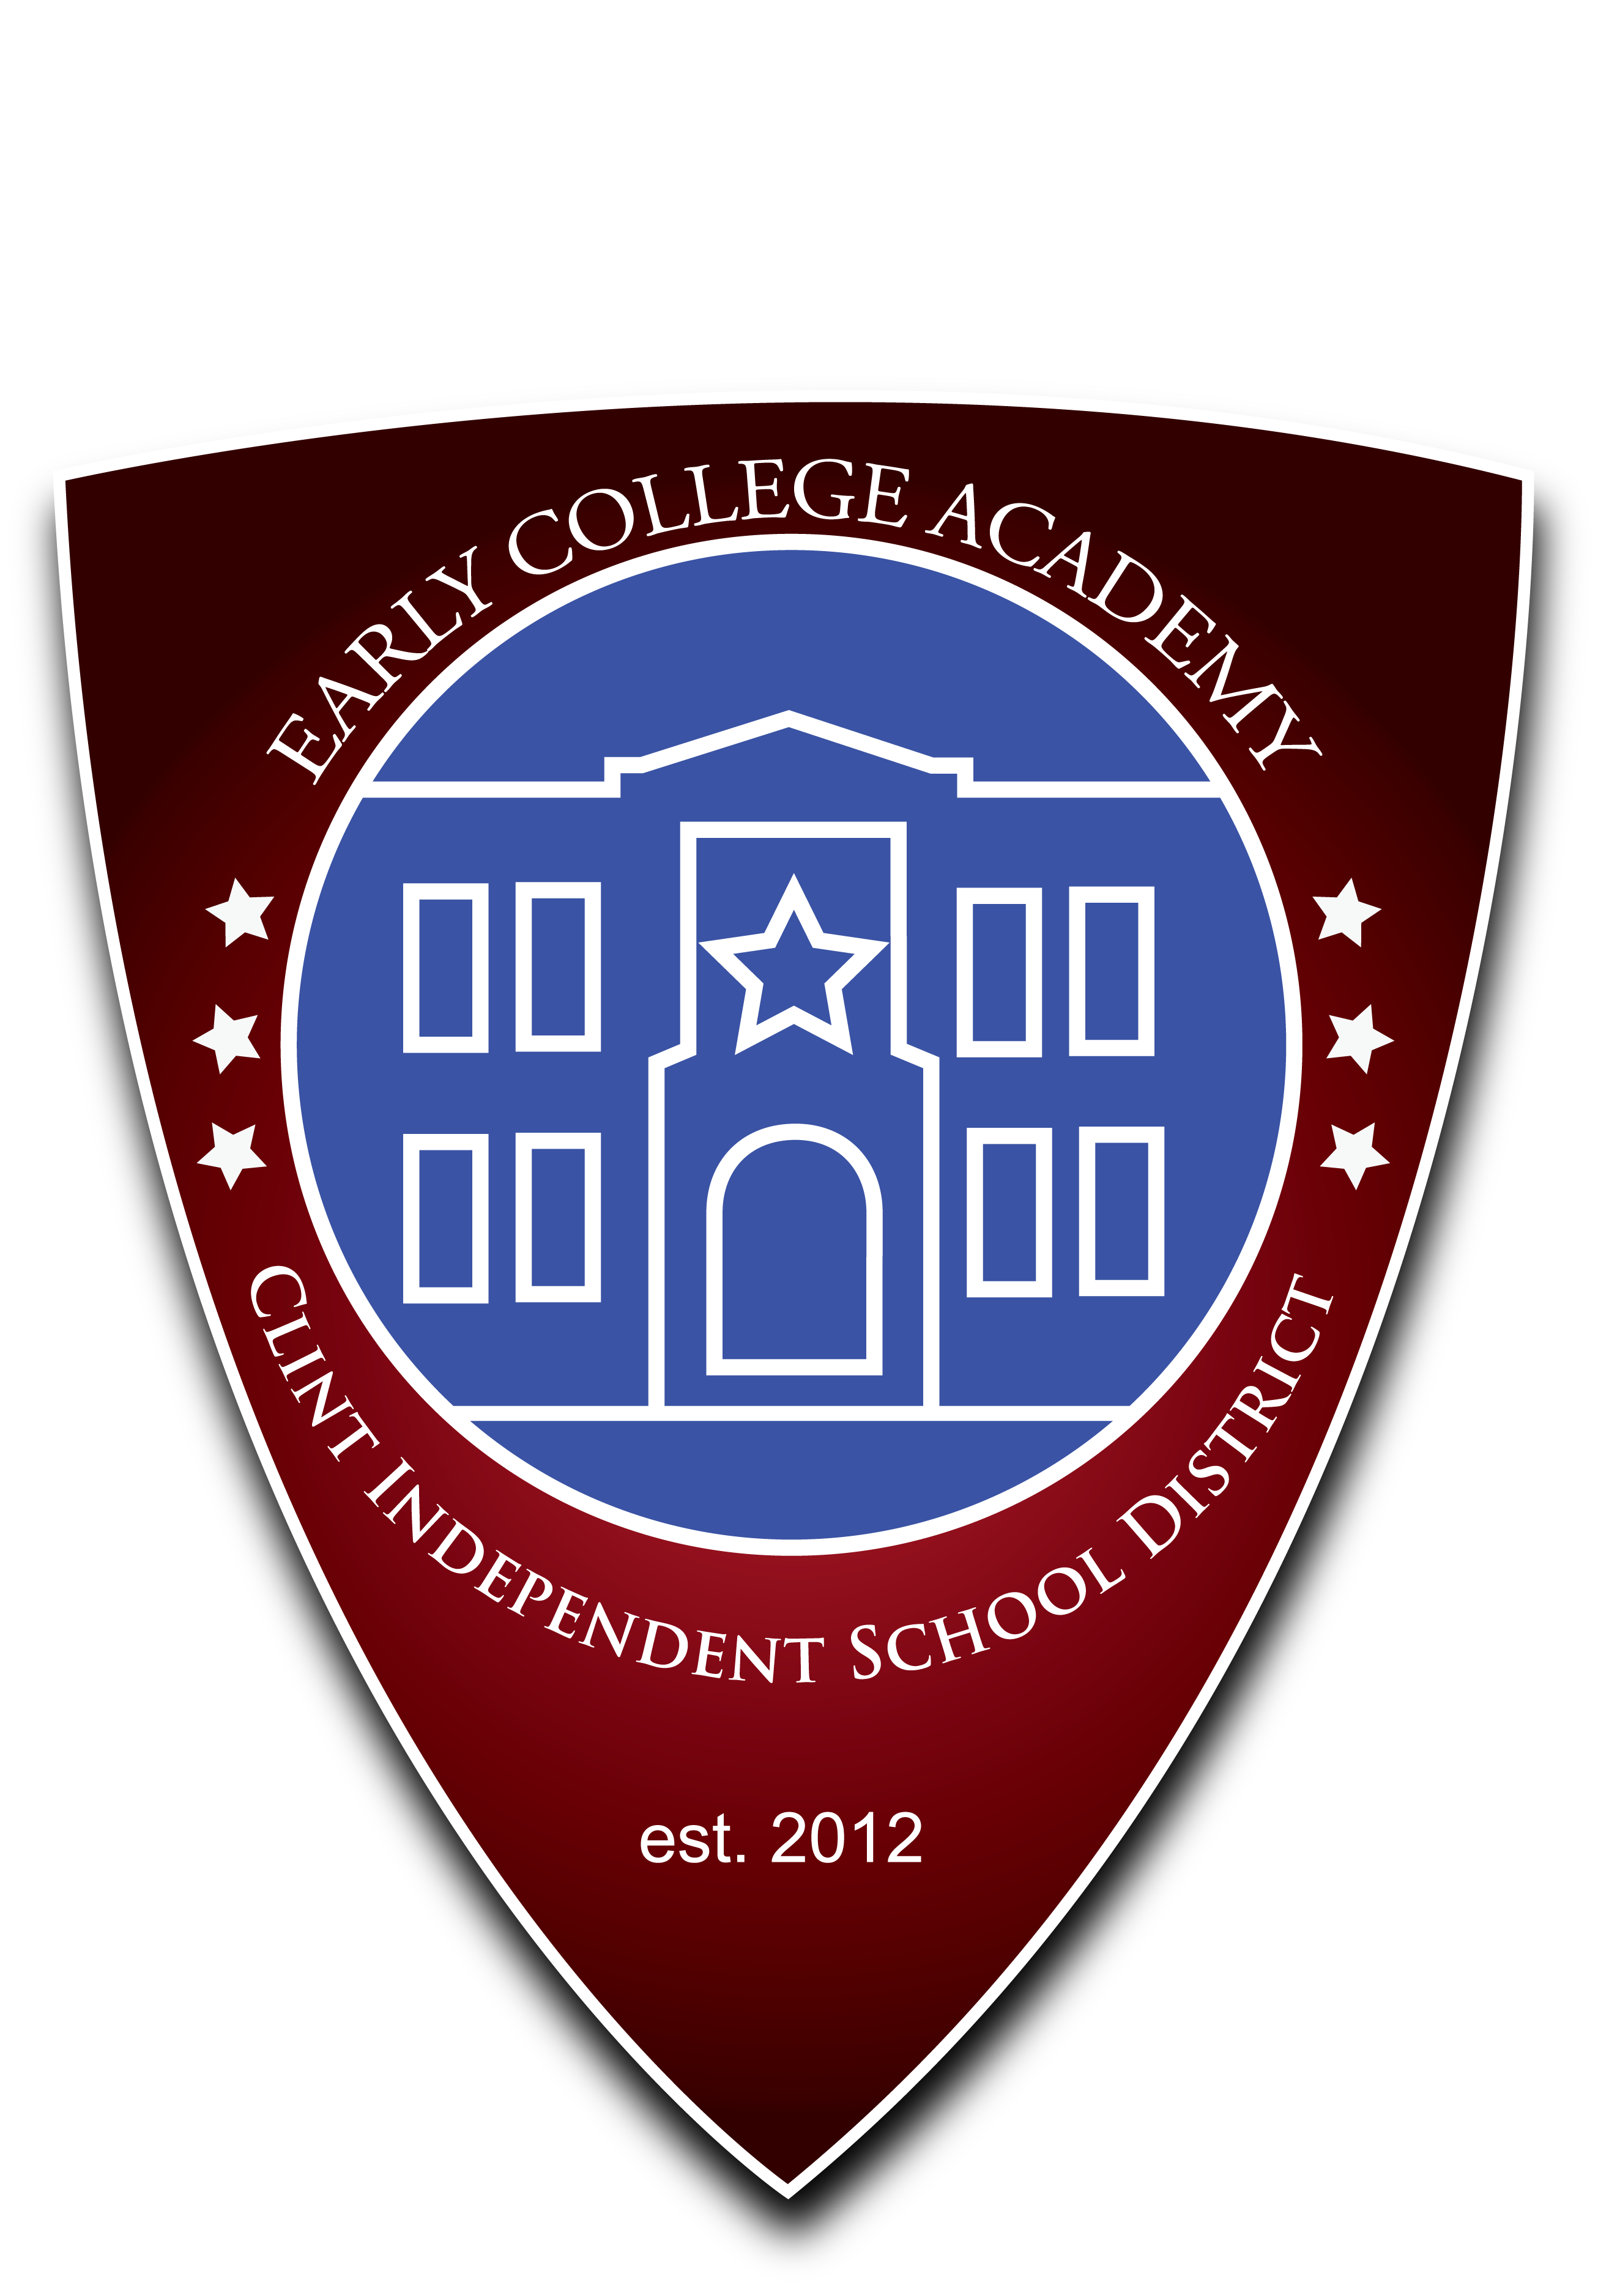 clint isd early college academy homepage